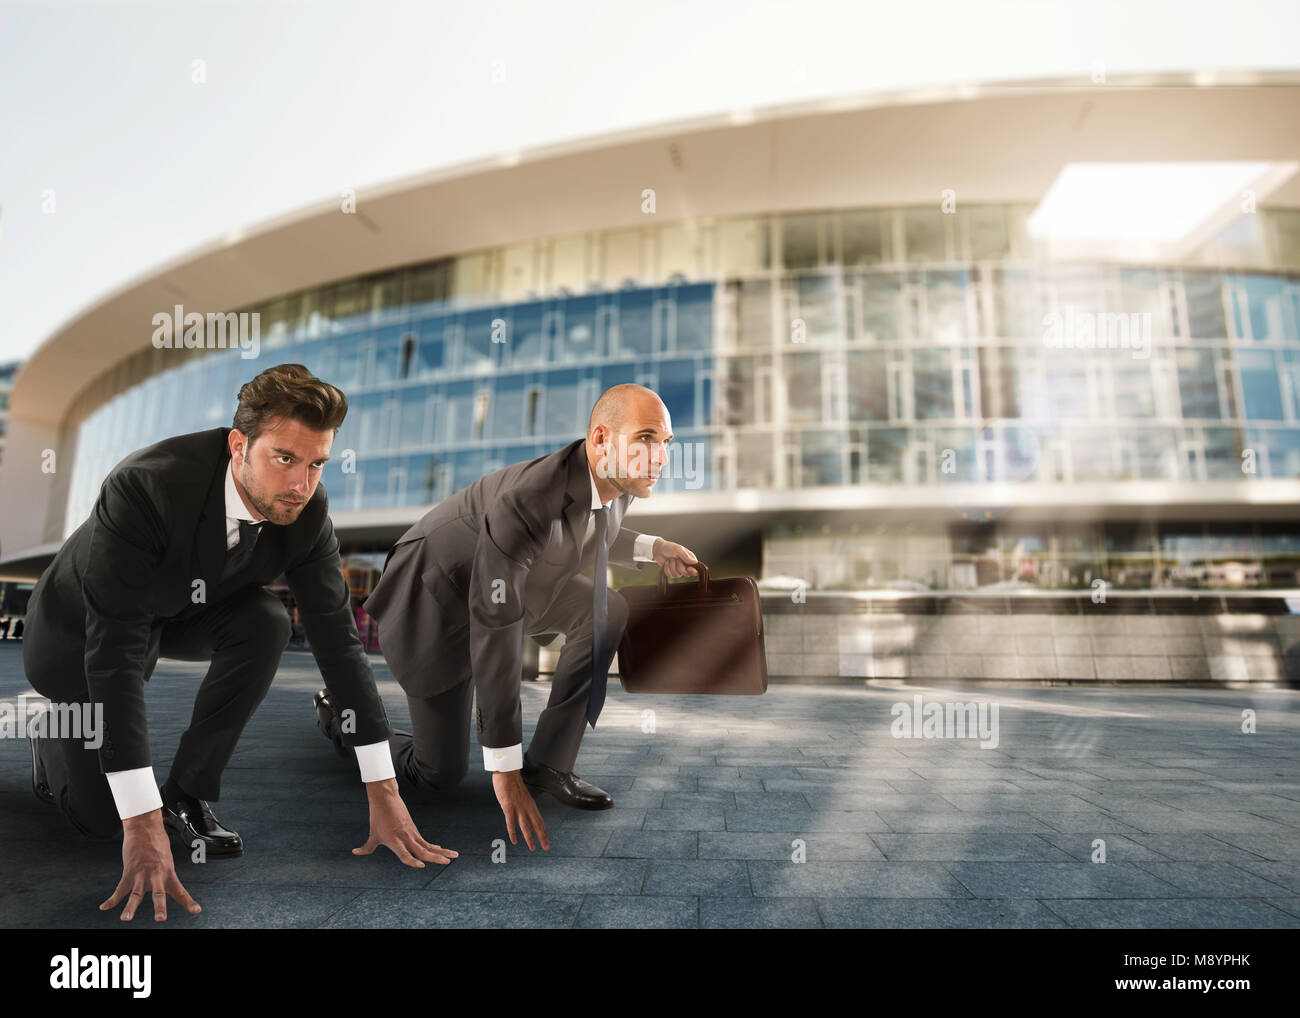 Businessmen ready to start. Competition and challenge in business concept - Stock Image